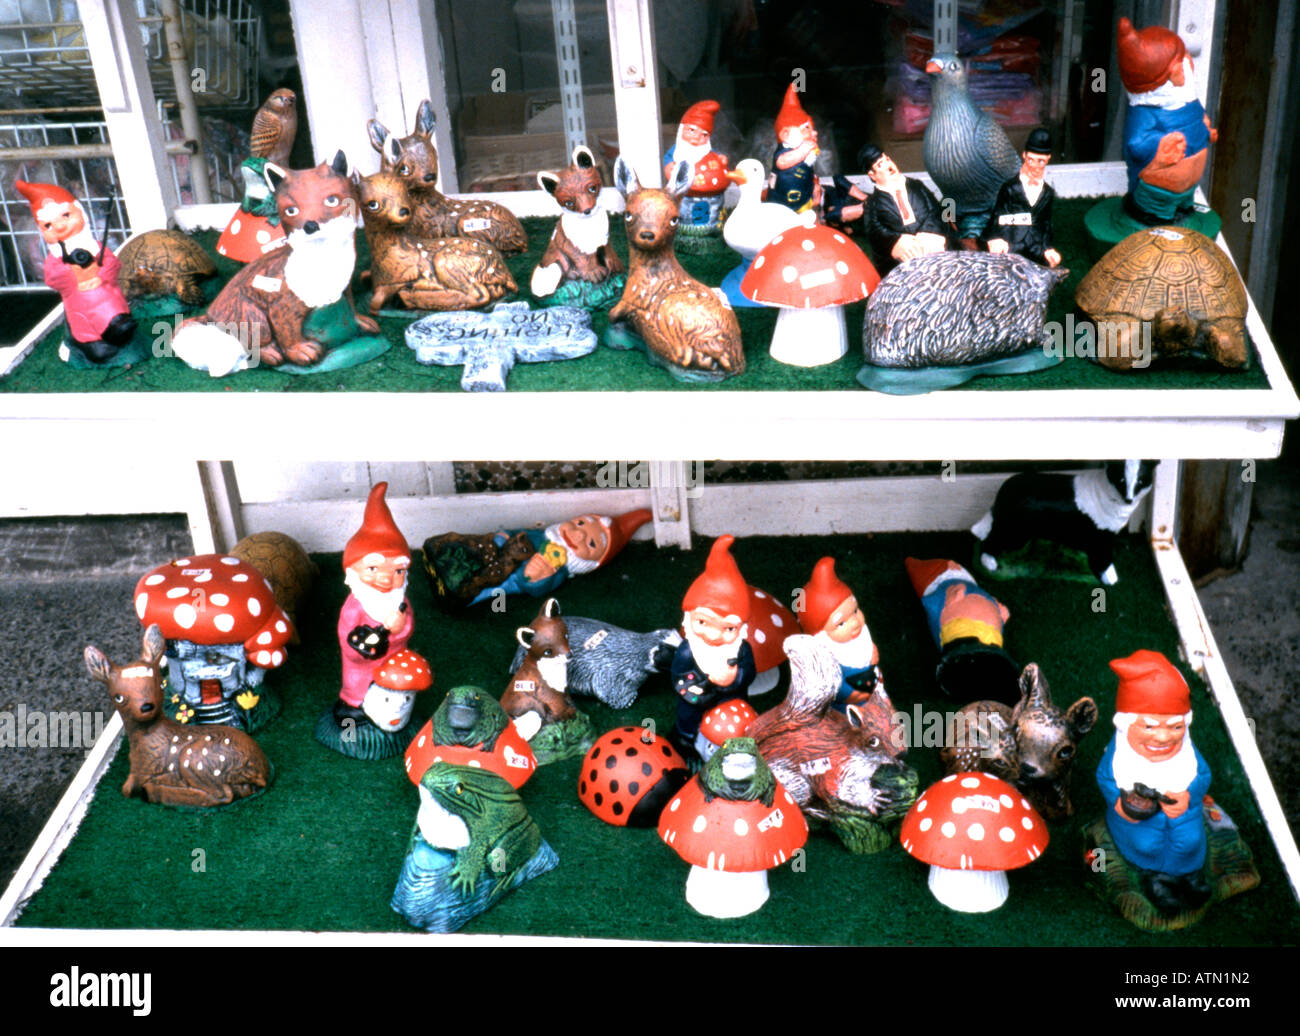 Pretty Funny Garden Gnomes Stock Photos  Funny Garden Gnomes Stock  With Exciting Garden Gnomes On Sale  Stock Image With Easy On The Eye Garden Spray Also Creative Gardens Ballymena In Addition Gardeners Plymouth And How To Grow Vertical Garden As Well As Great Restaurants Covent Garden Additionally Pallets Ideas Garden From Alamycom With   Exciting Funny Garden Gnomes Stock Photos  Funny Garden Gnomes Stock  With Easy On The Eye Garden Gnomes On Sale  Stock Image And Pretty Garden Spray Also Creative Gardens Ballymena In Addition Gardeners Plymouth From Alamycom